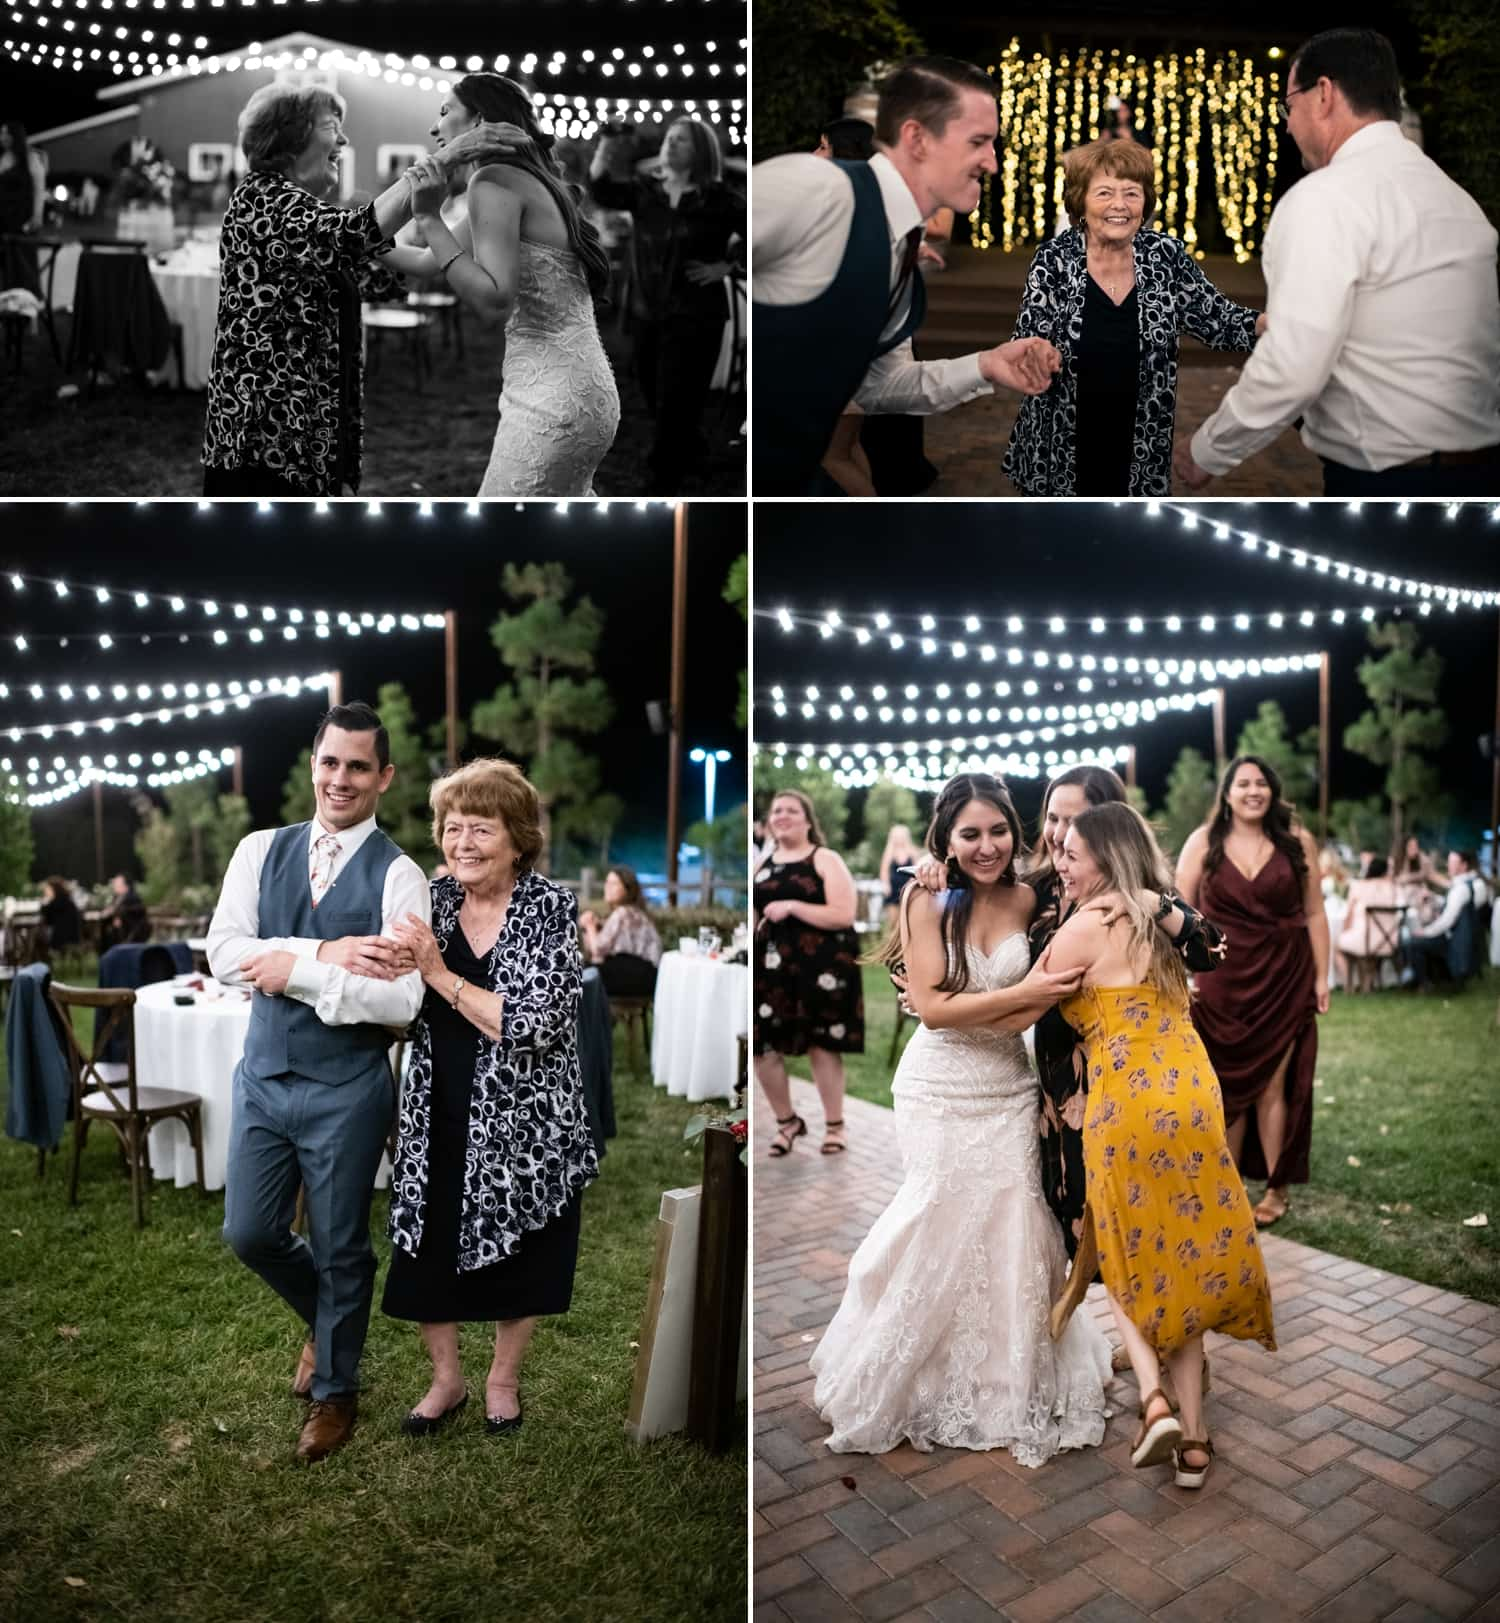 Bride dancing with her Grandma at her wedding.